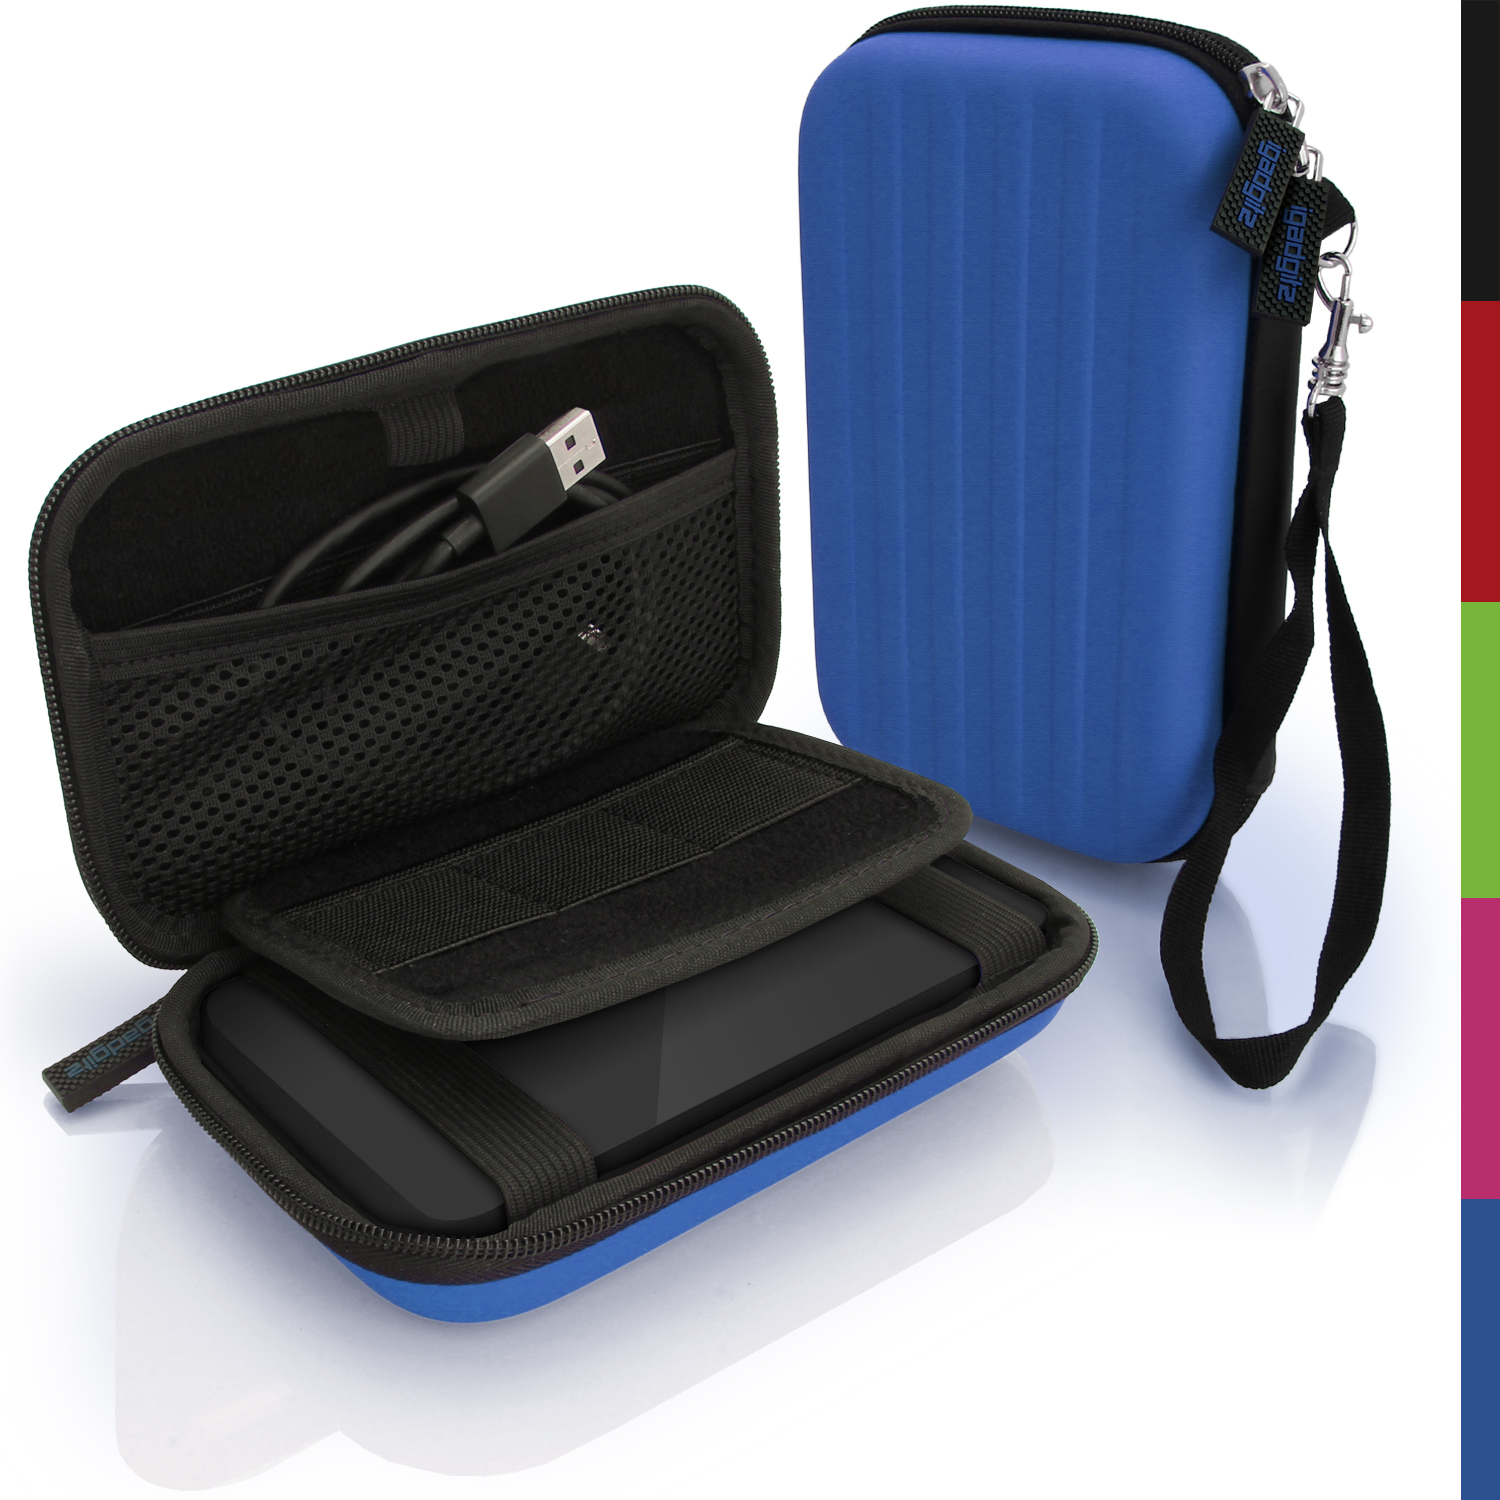 iGadgitz Blue EVA Hard Travel Case Cover for Portable External Hard Drives (Internal Dimensions: 160 x 93.5 x 21.5mm)